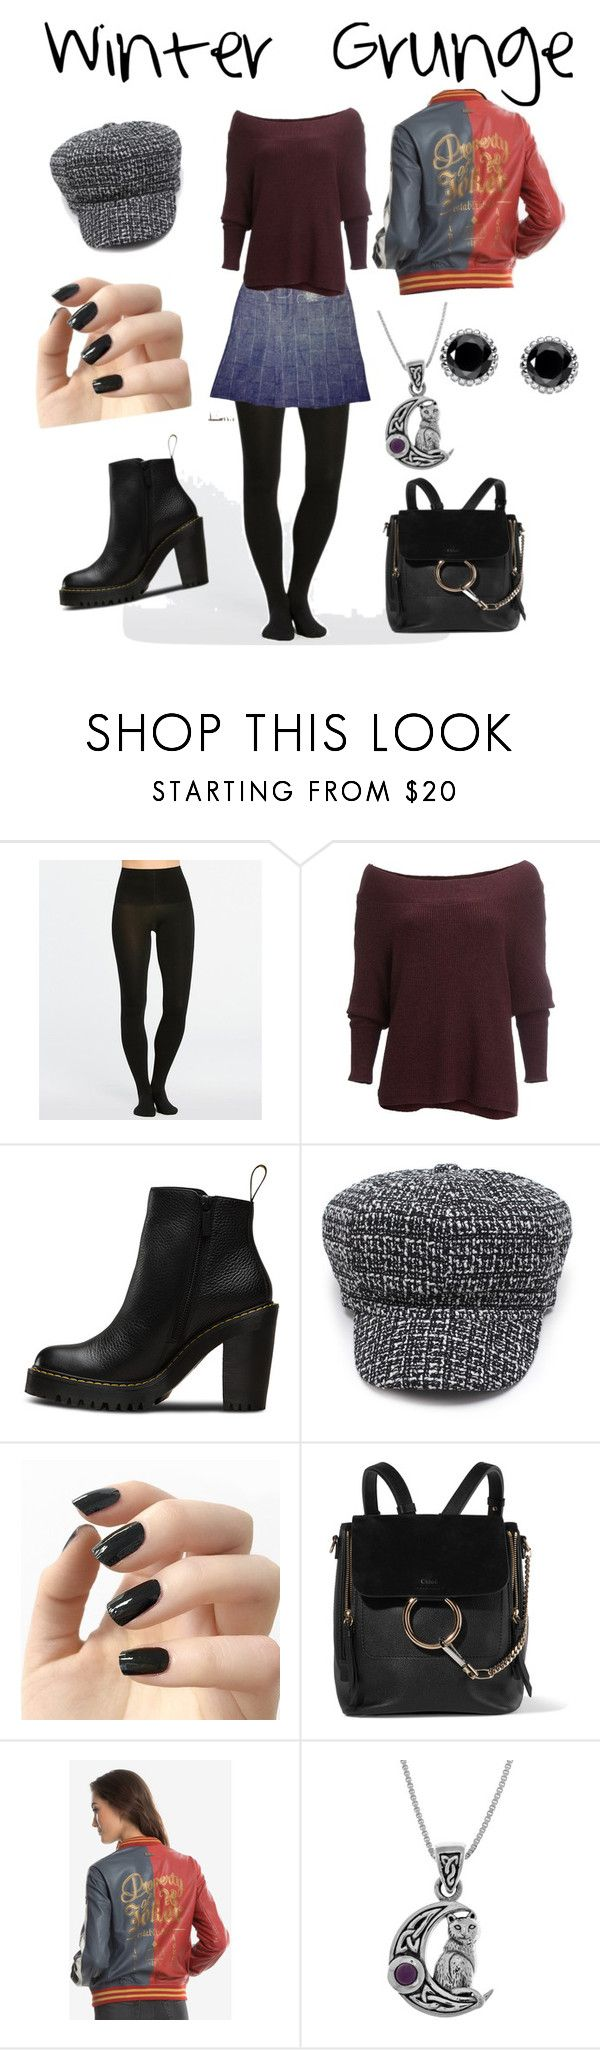 """""""Winter Grunge"""" by ross-stark on Polyvore featuring SPANX, Free People, Magdalena, Incoco, Chloé, DC Comics, Carolina Glamour Collection and Thomas Sabo"""